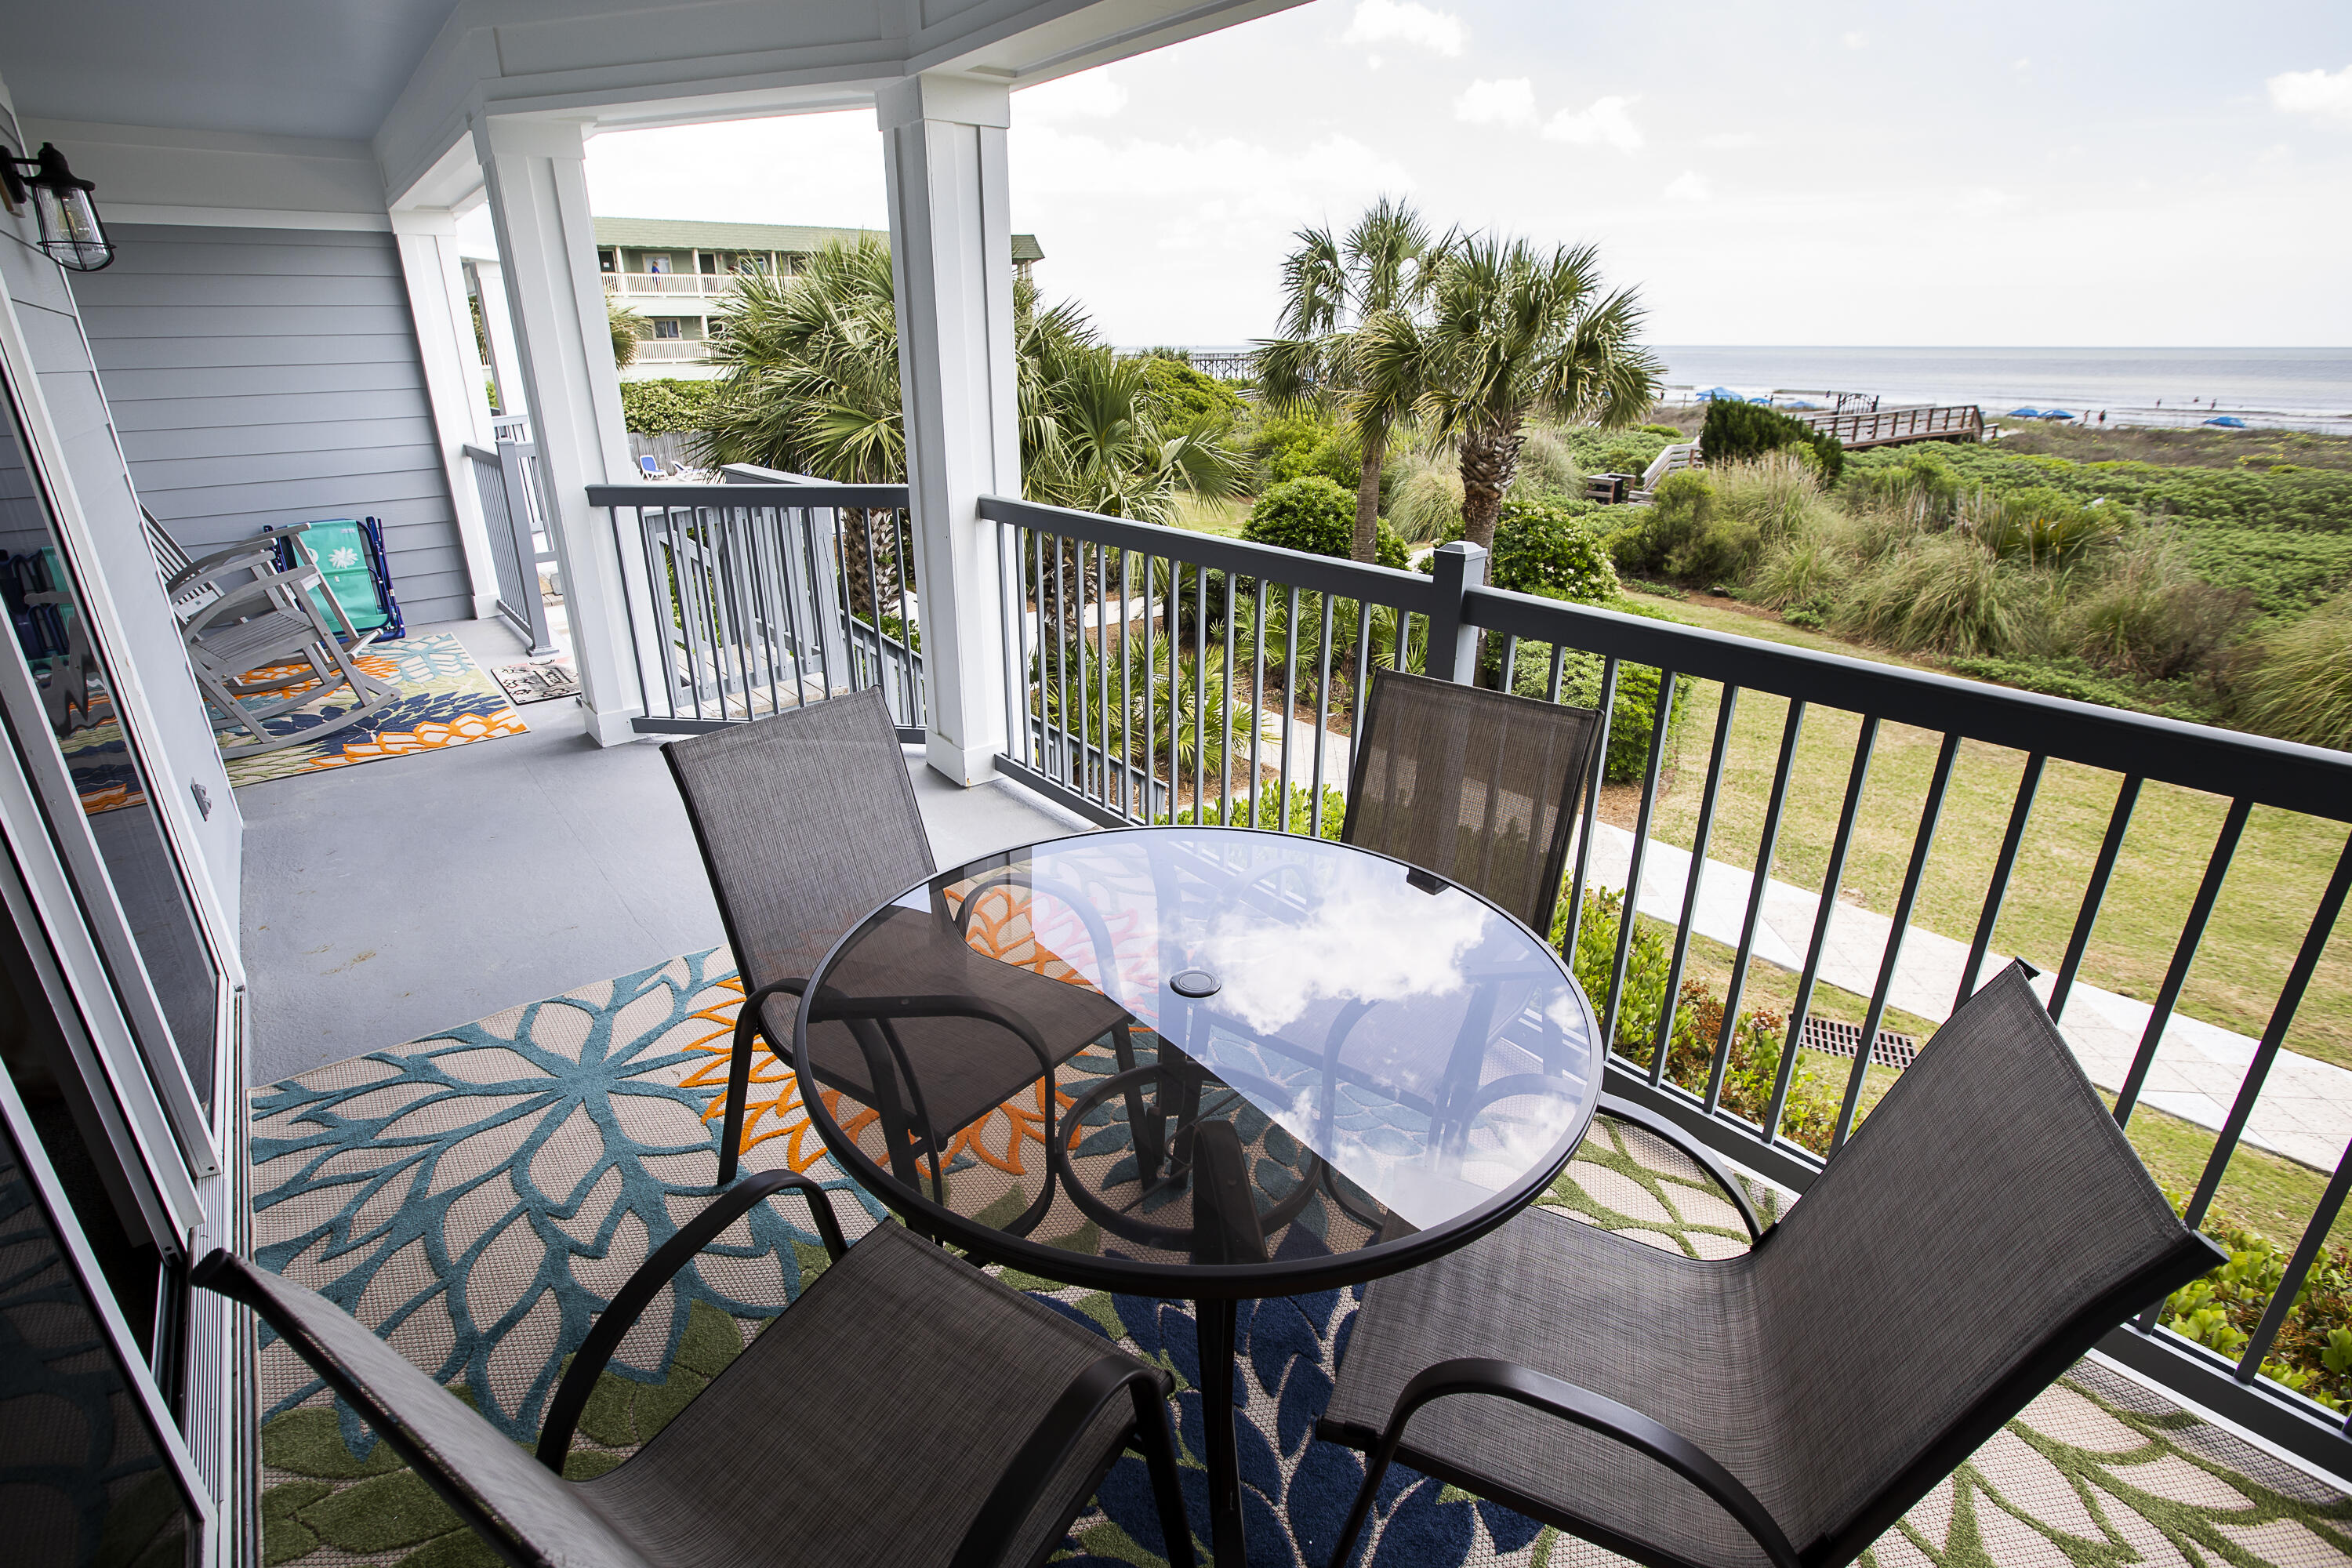 Isle of Palms Homes For Sale - 1140 Ocean, Isle of Palms, SC - 4